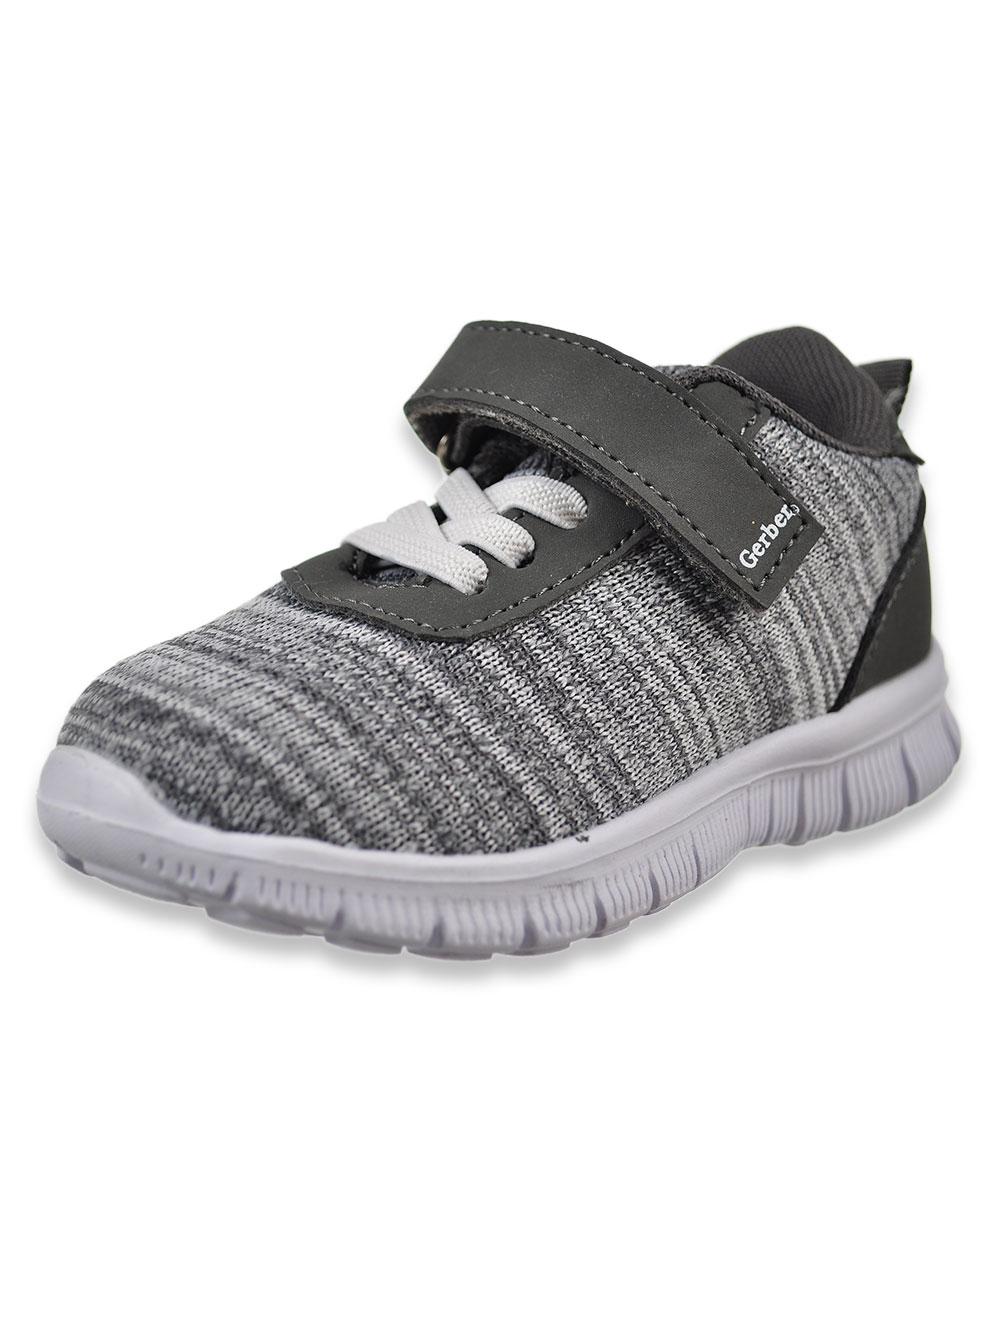 Boys Gray Sneakers